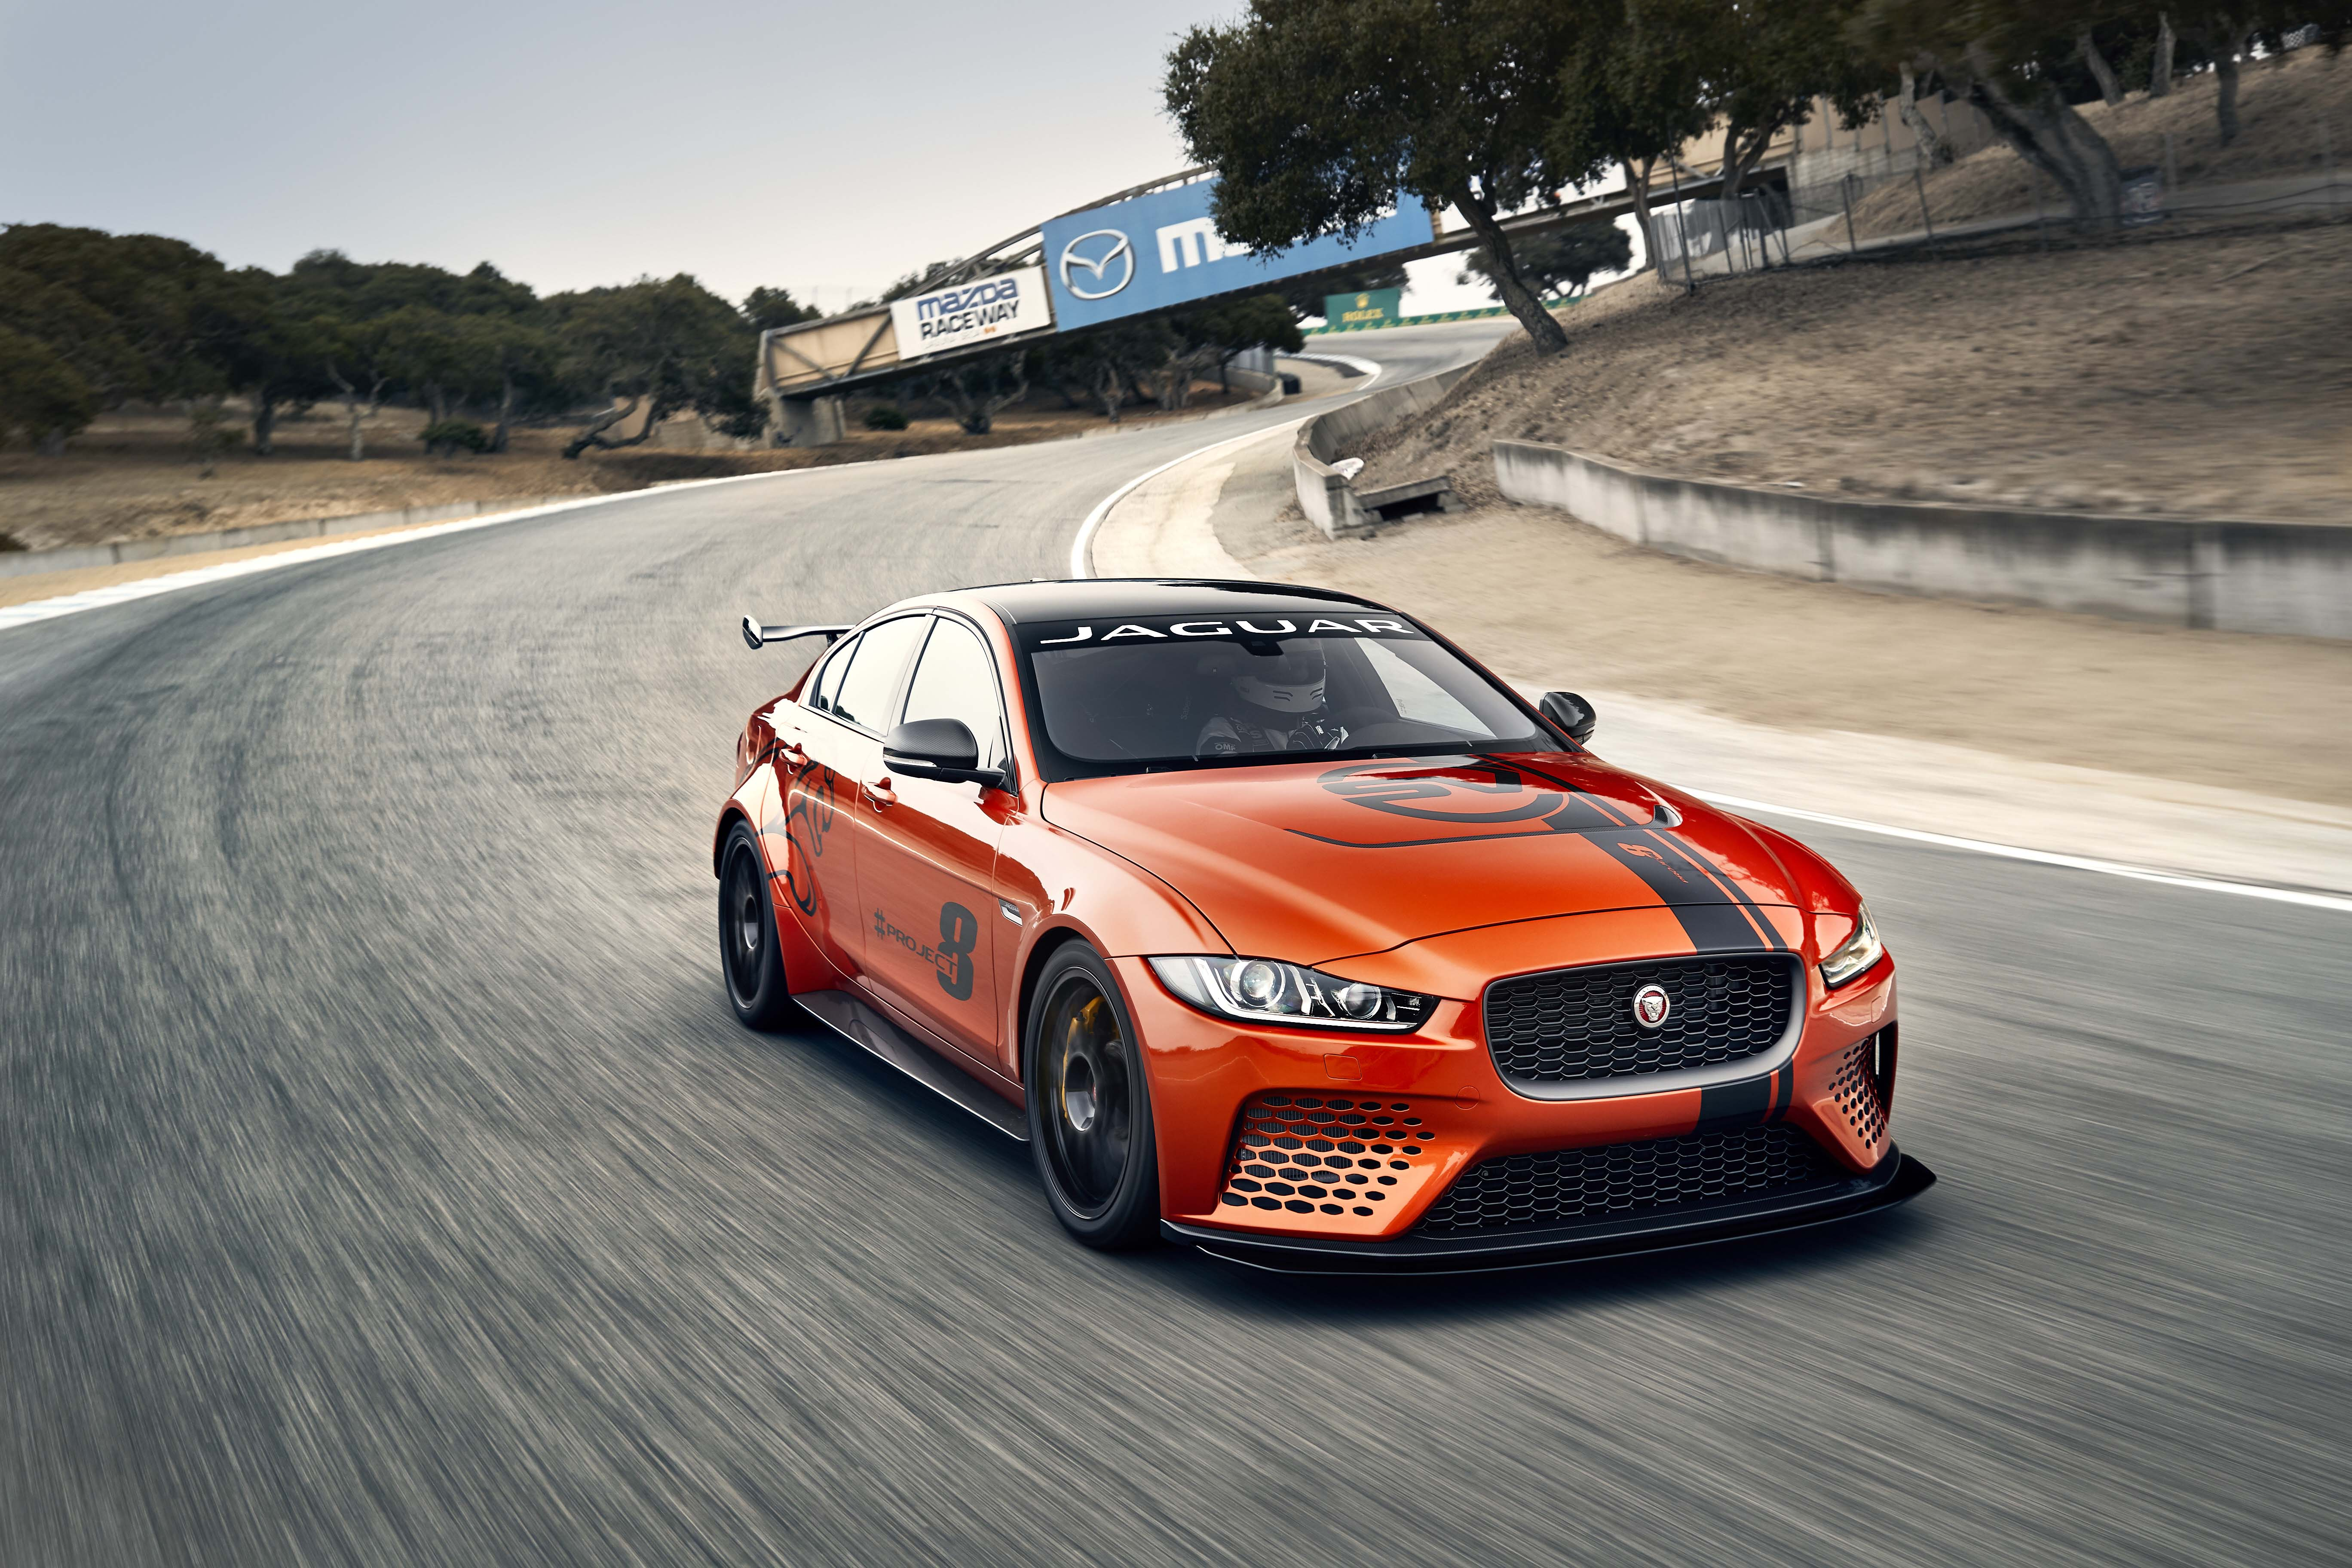 Jaguar Xe Sv Project 8 Jaguar Xe Sv Project 8 Track Video Automotive Rhythms